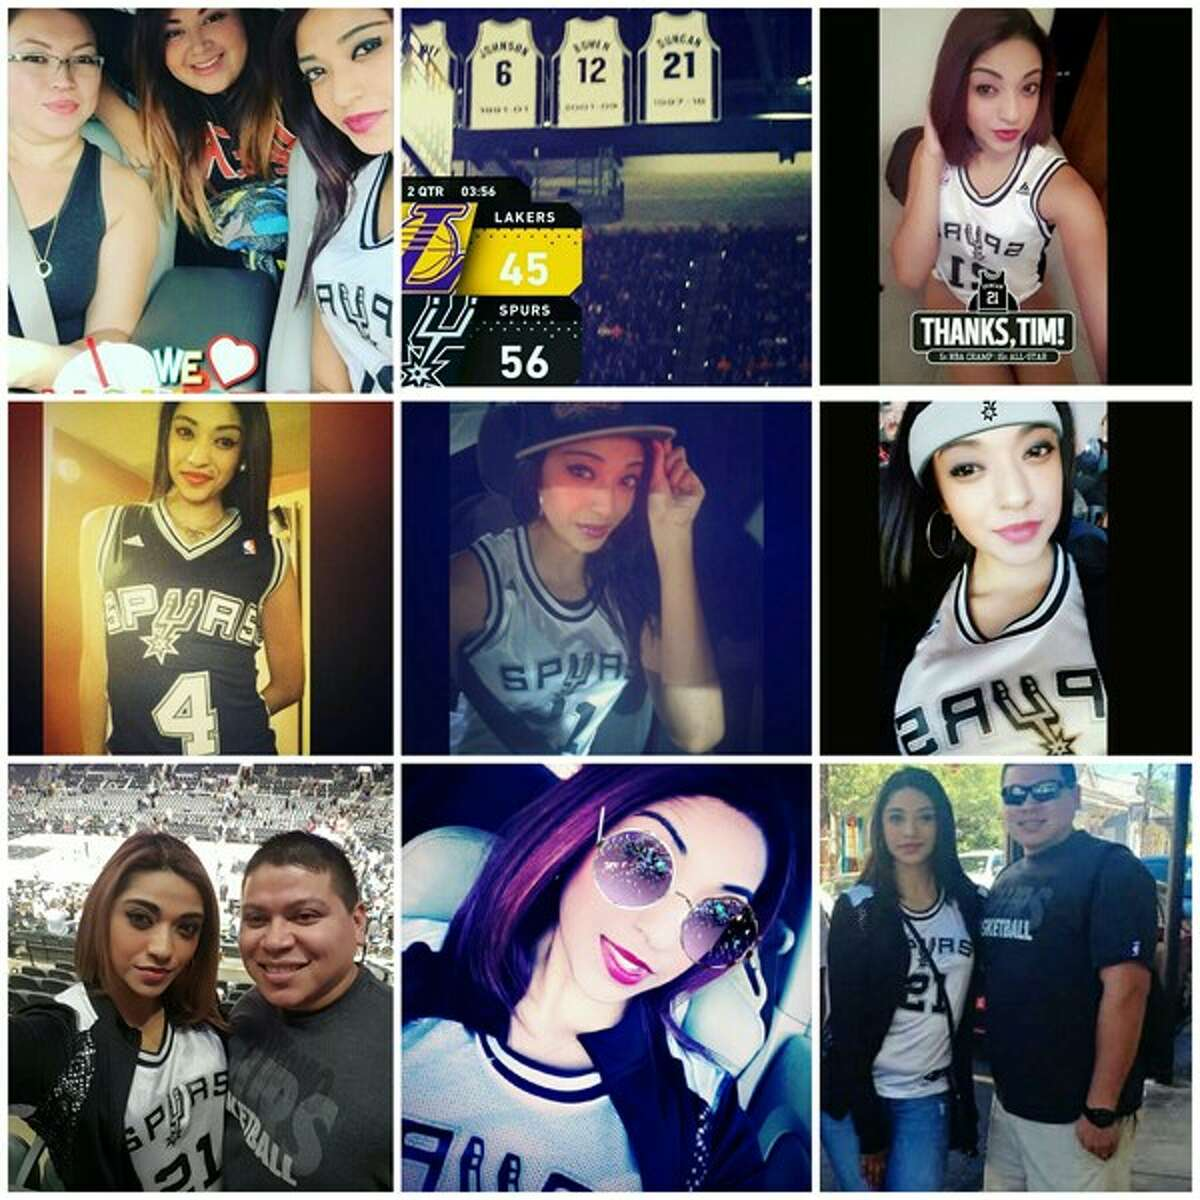 Think you are the top Spurs fan around? Enter our contest like these super Spurs fans and find out.